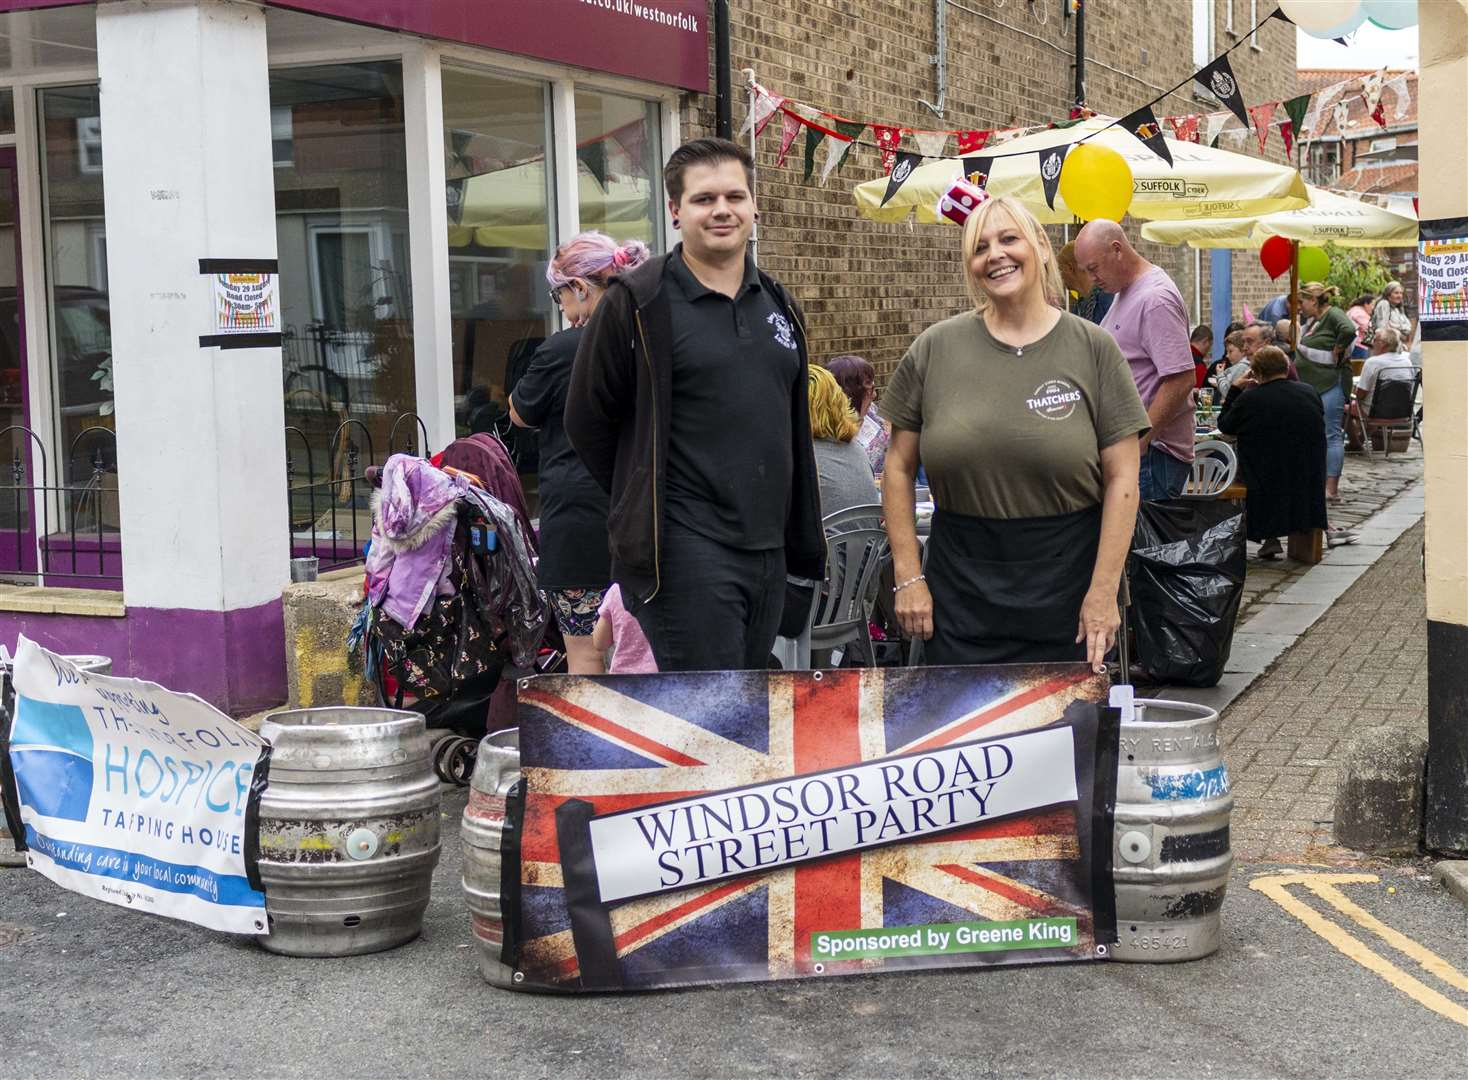 The Windsor Road street party raised funds for Tapping House. (50743415)